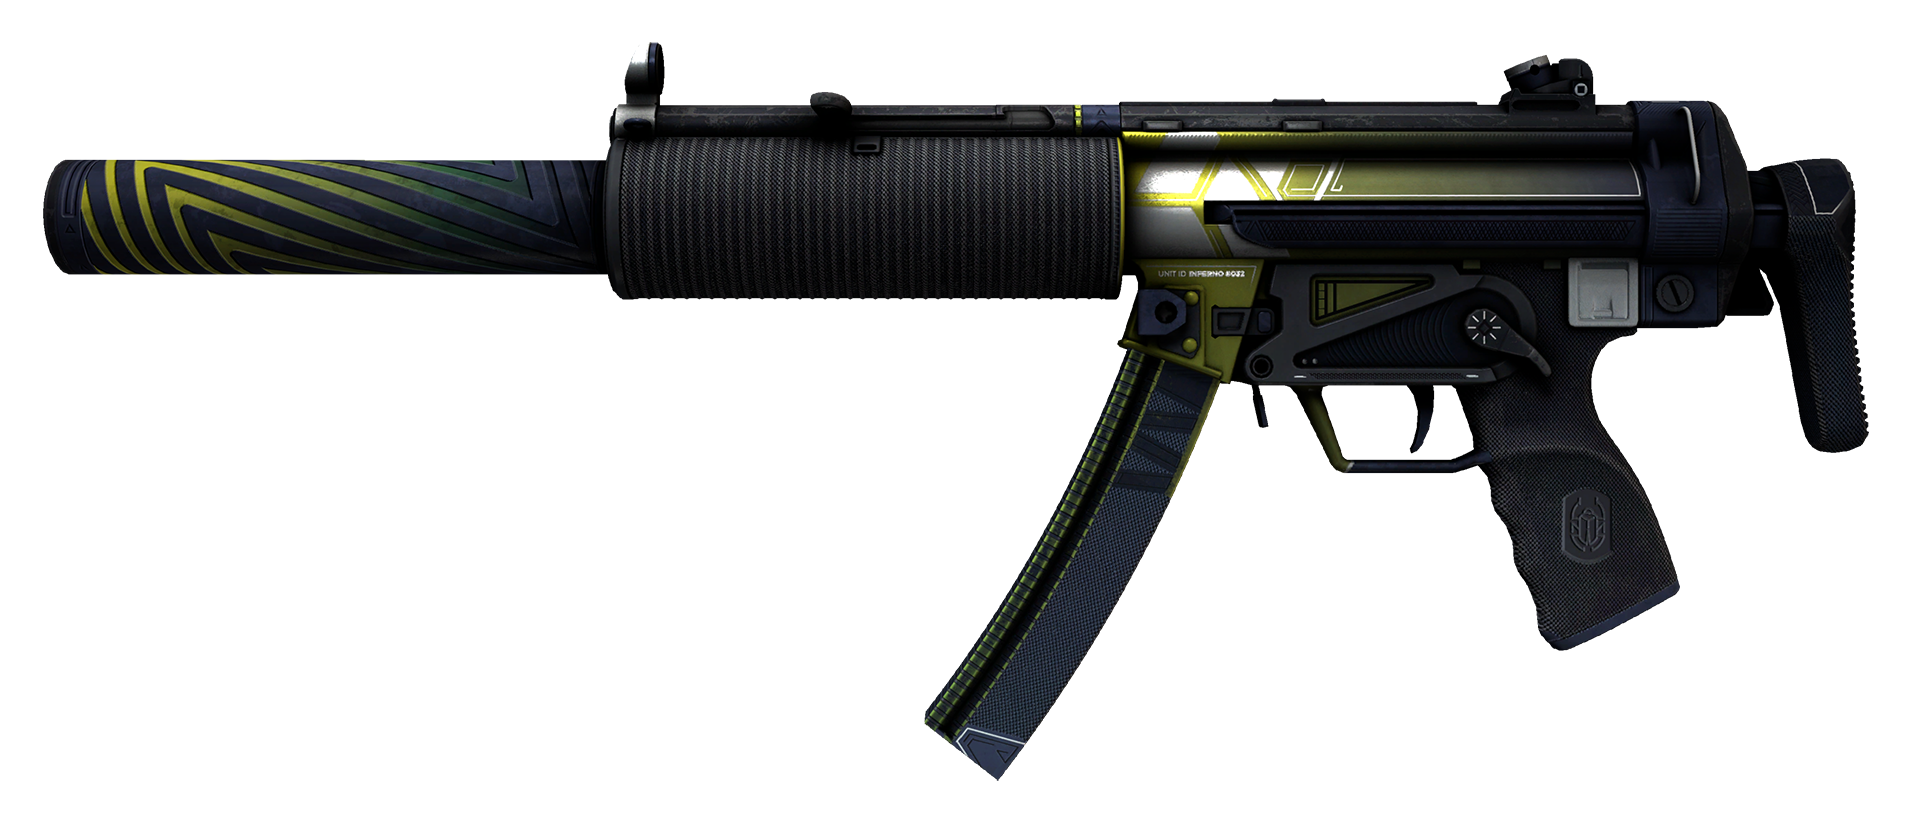 MP5-SD Condition Zero Large Rendering